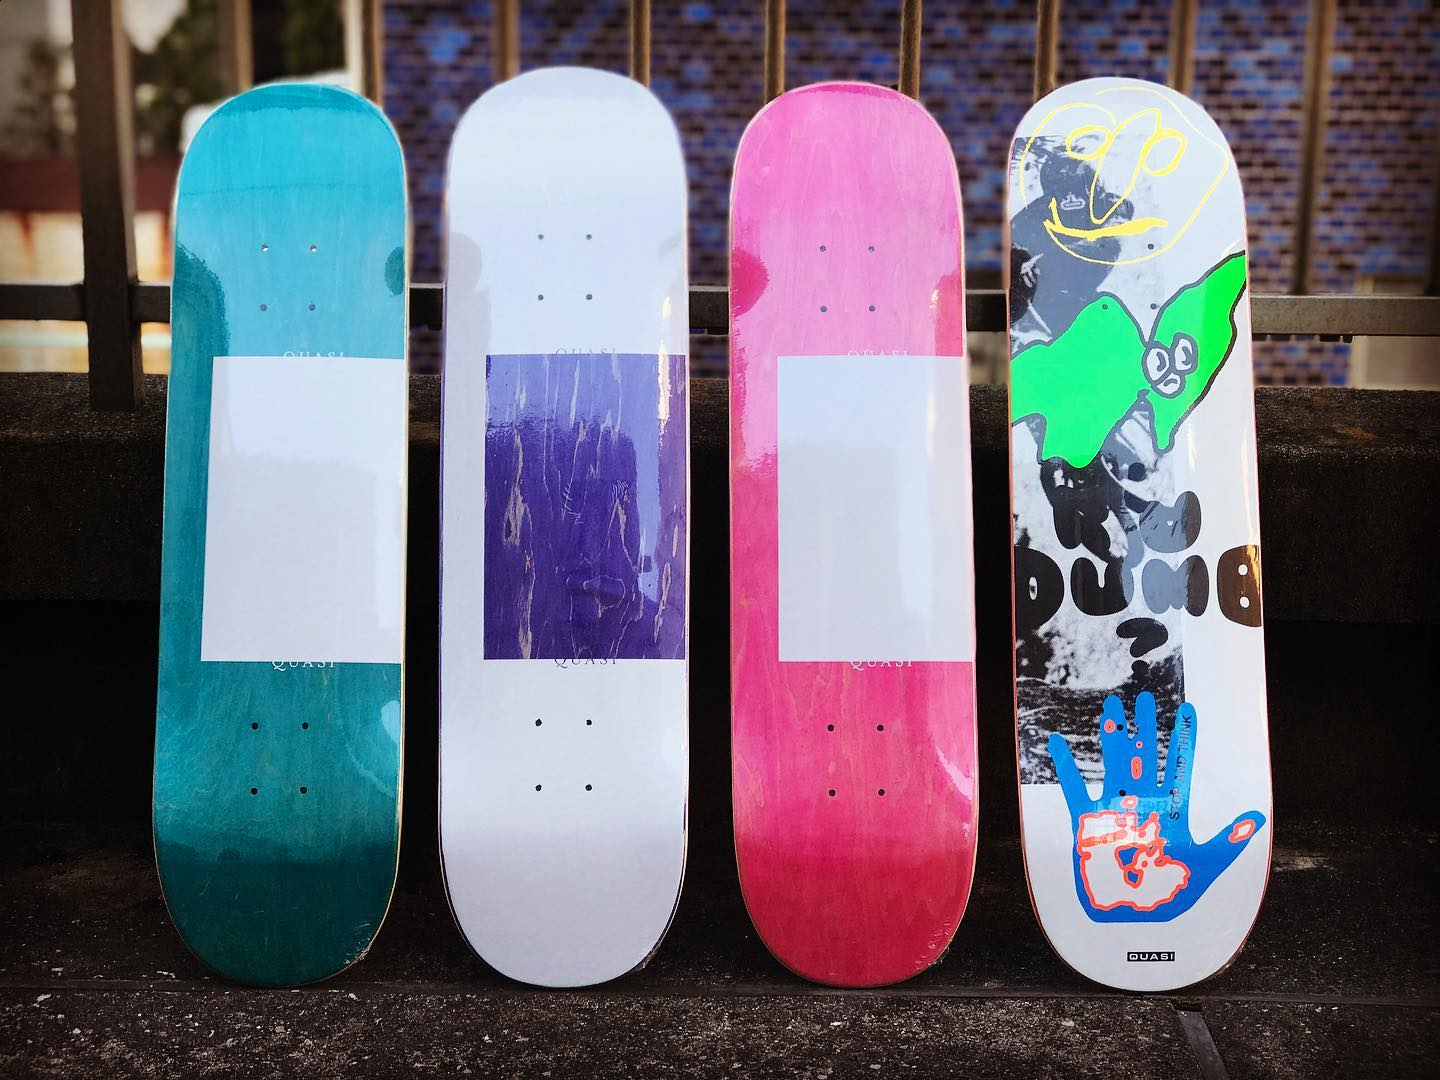 ・New @quasiskateboards decks.